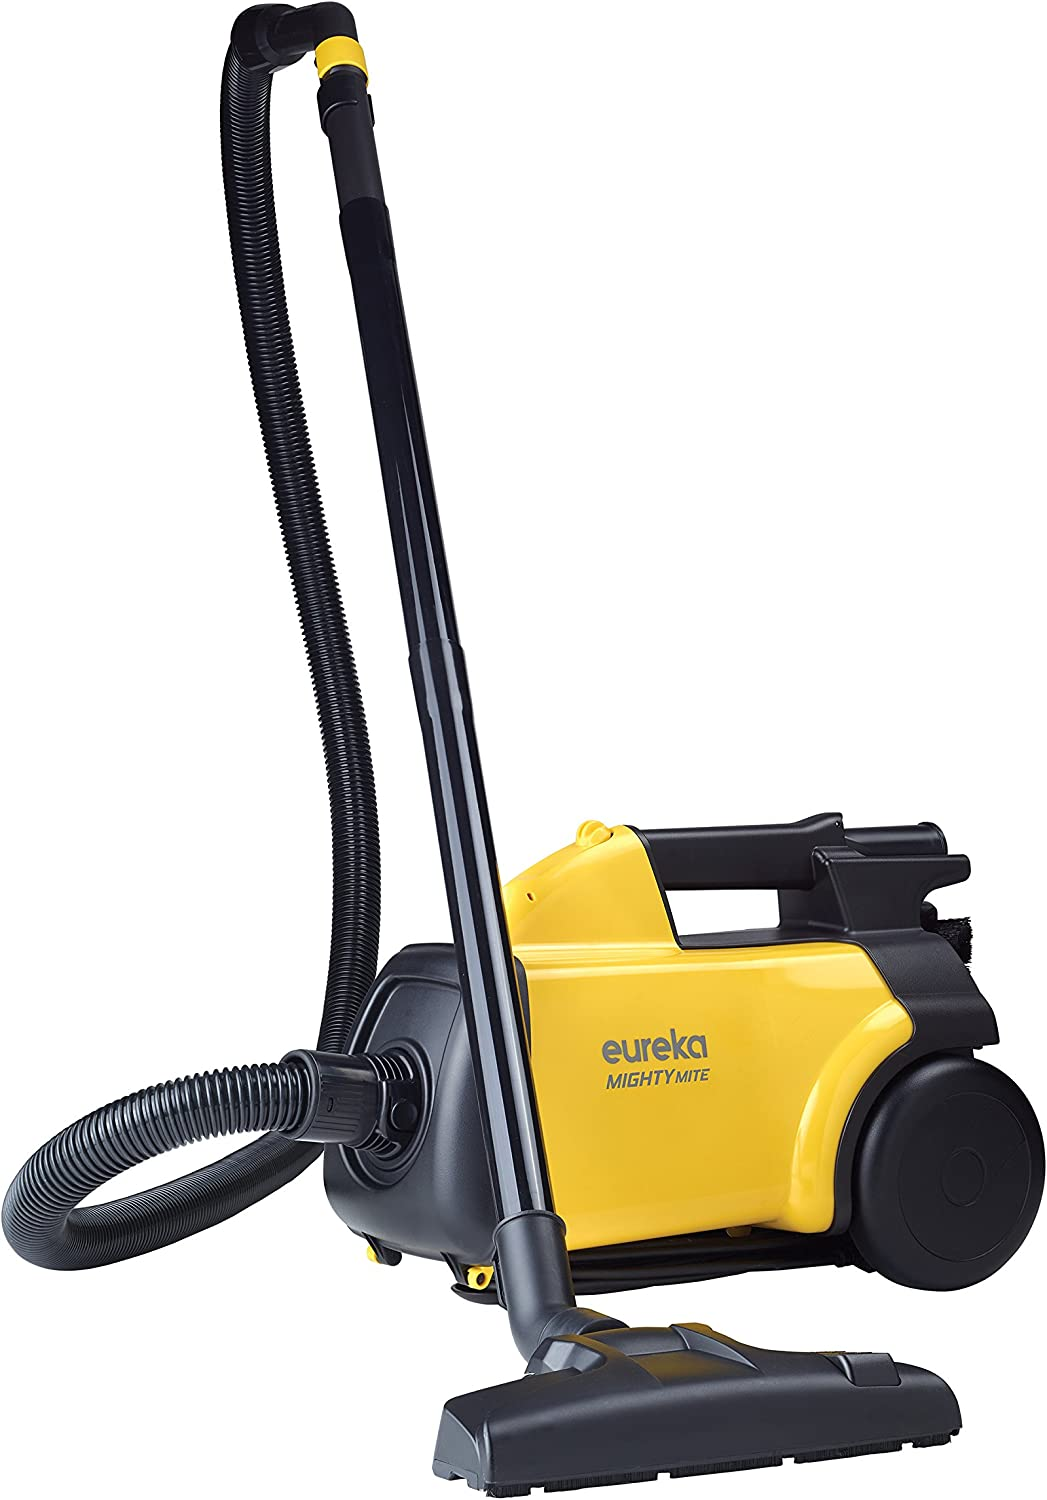 B00002N8CX Eureka Mighty Mite 3670G Corded Canister Vacuum Cleaner, Yellow, Pet, 3670g-yellow 81cv17ml2SL